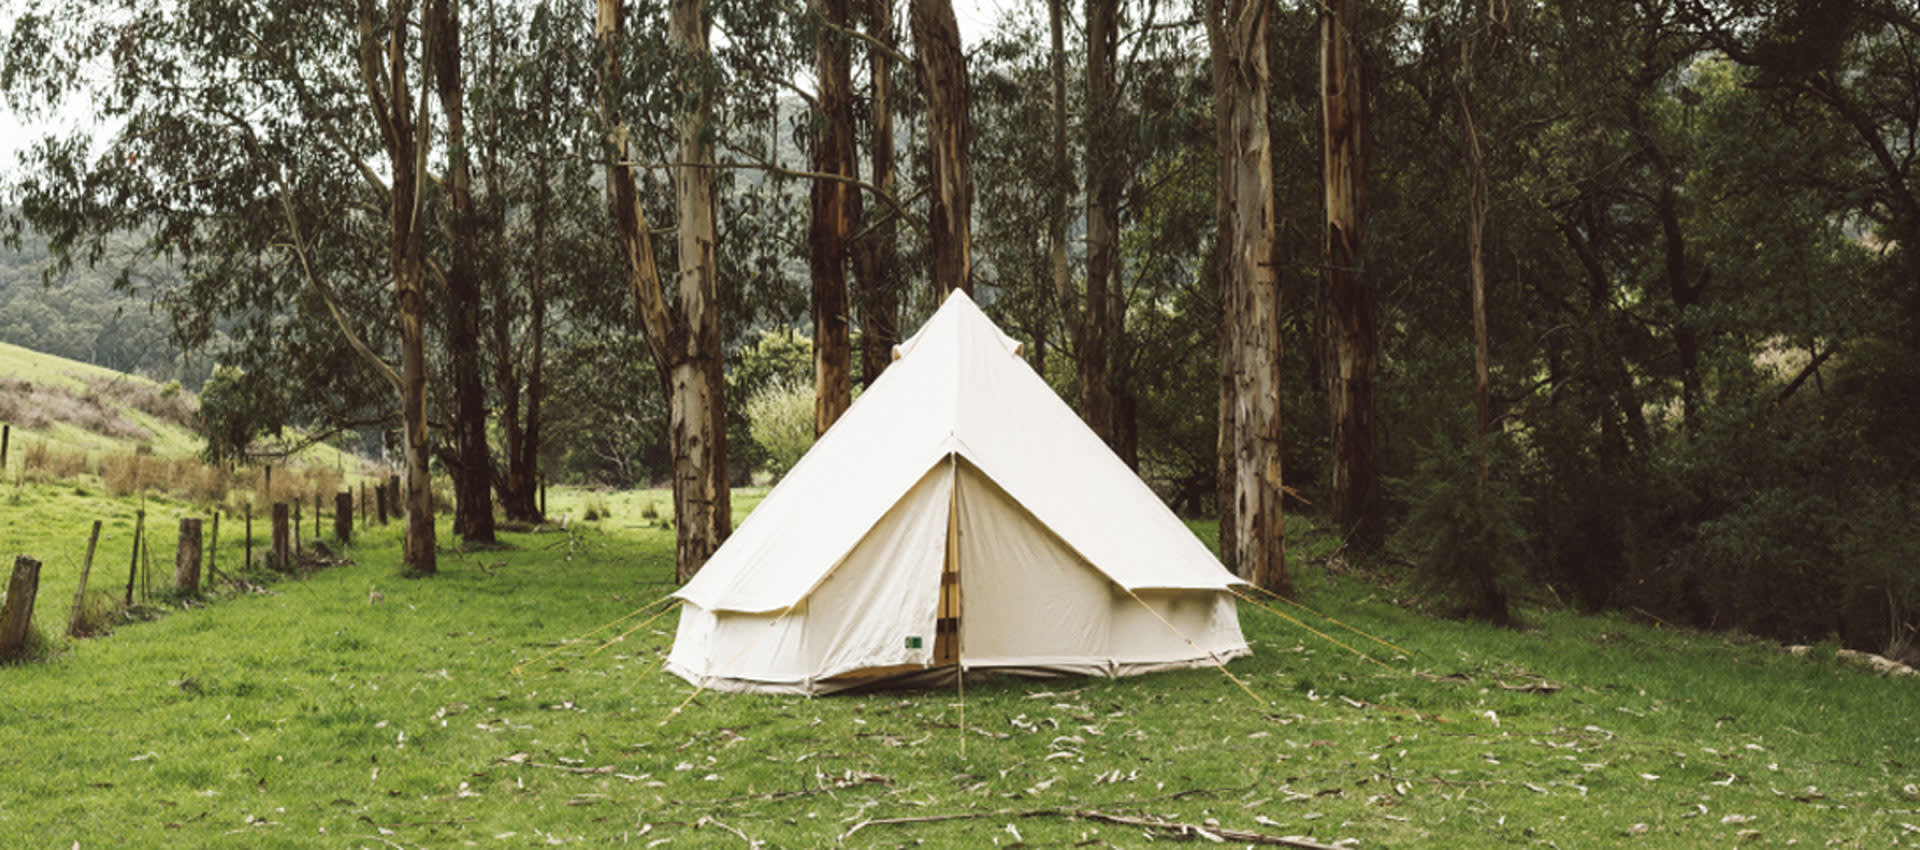 The Sunshine Coast's 8 best camping spots for camping rookies